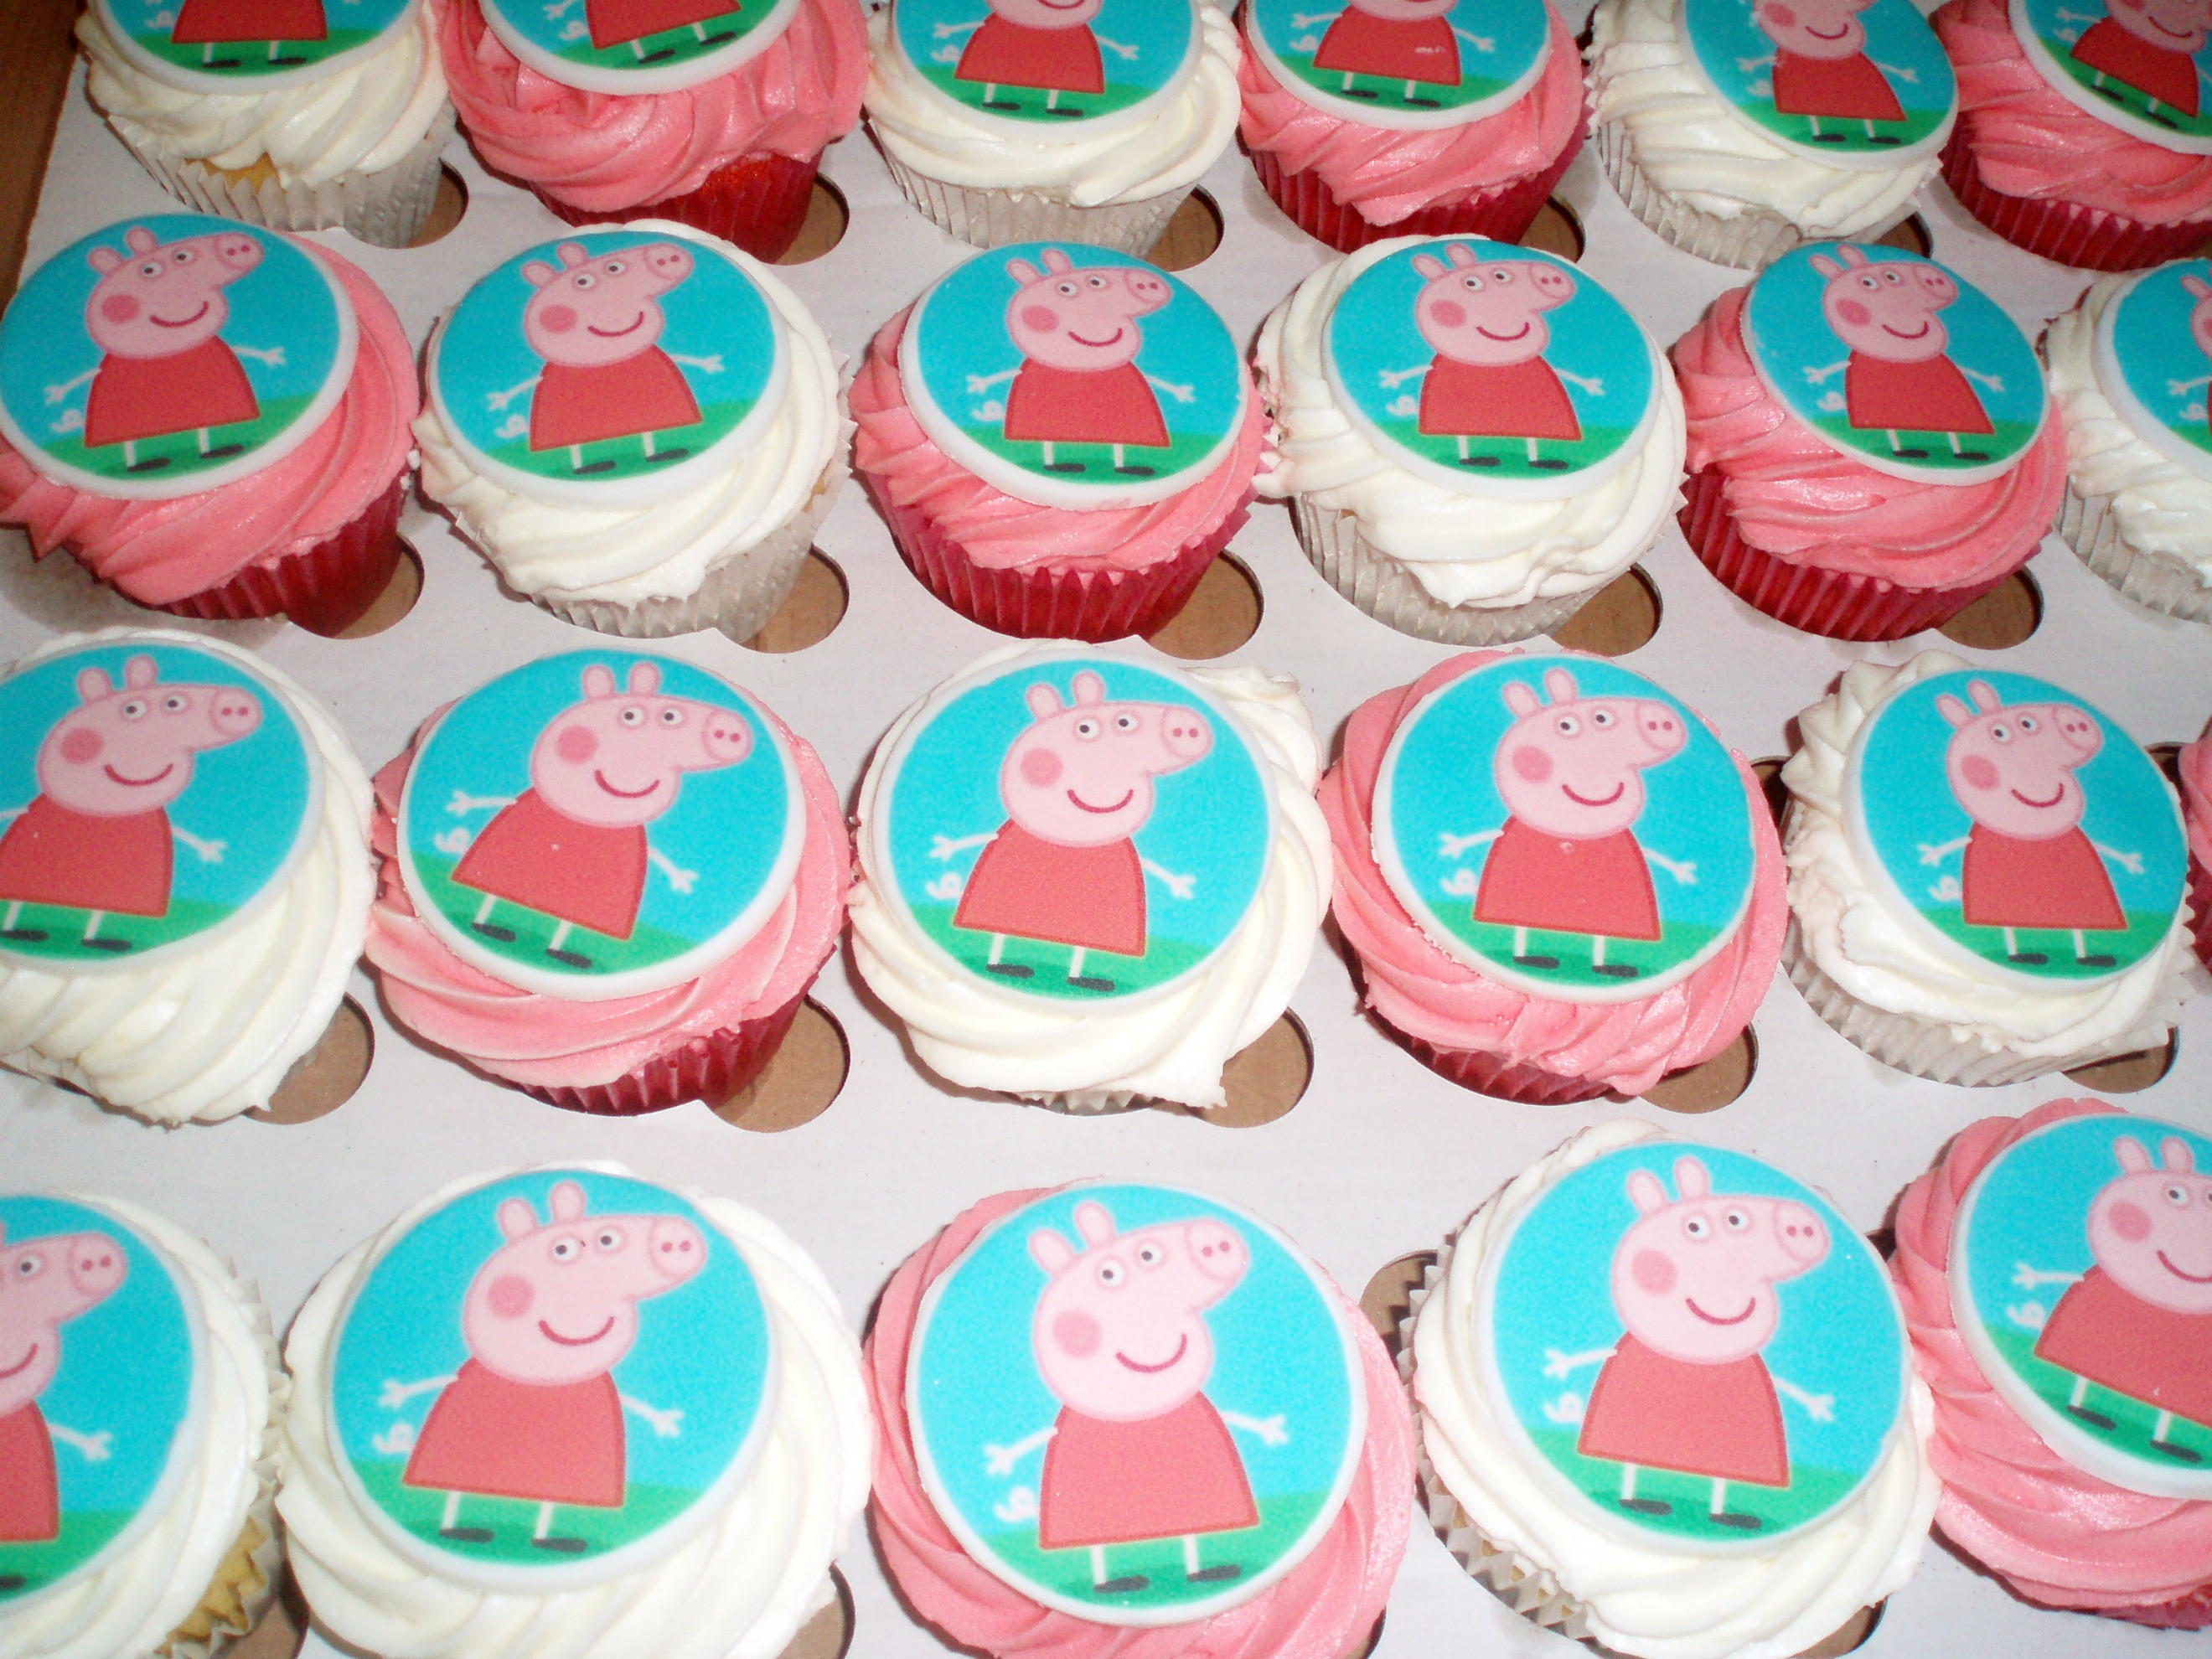 Peppa Pig Cupcakes  Cake Tales Notorious P I G